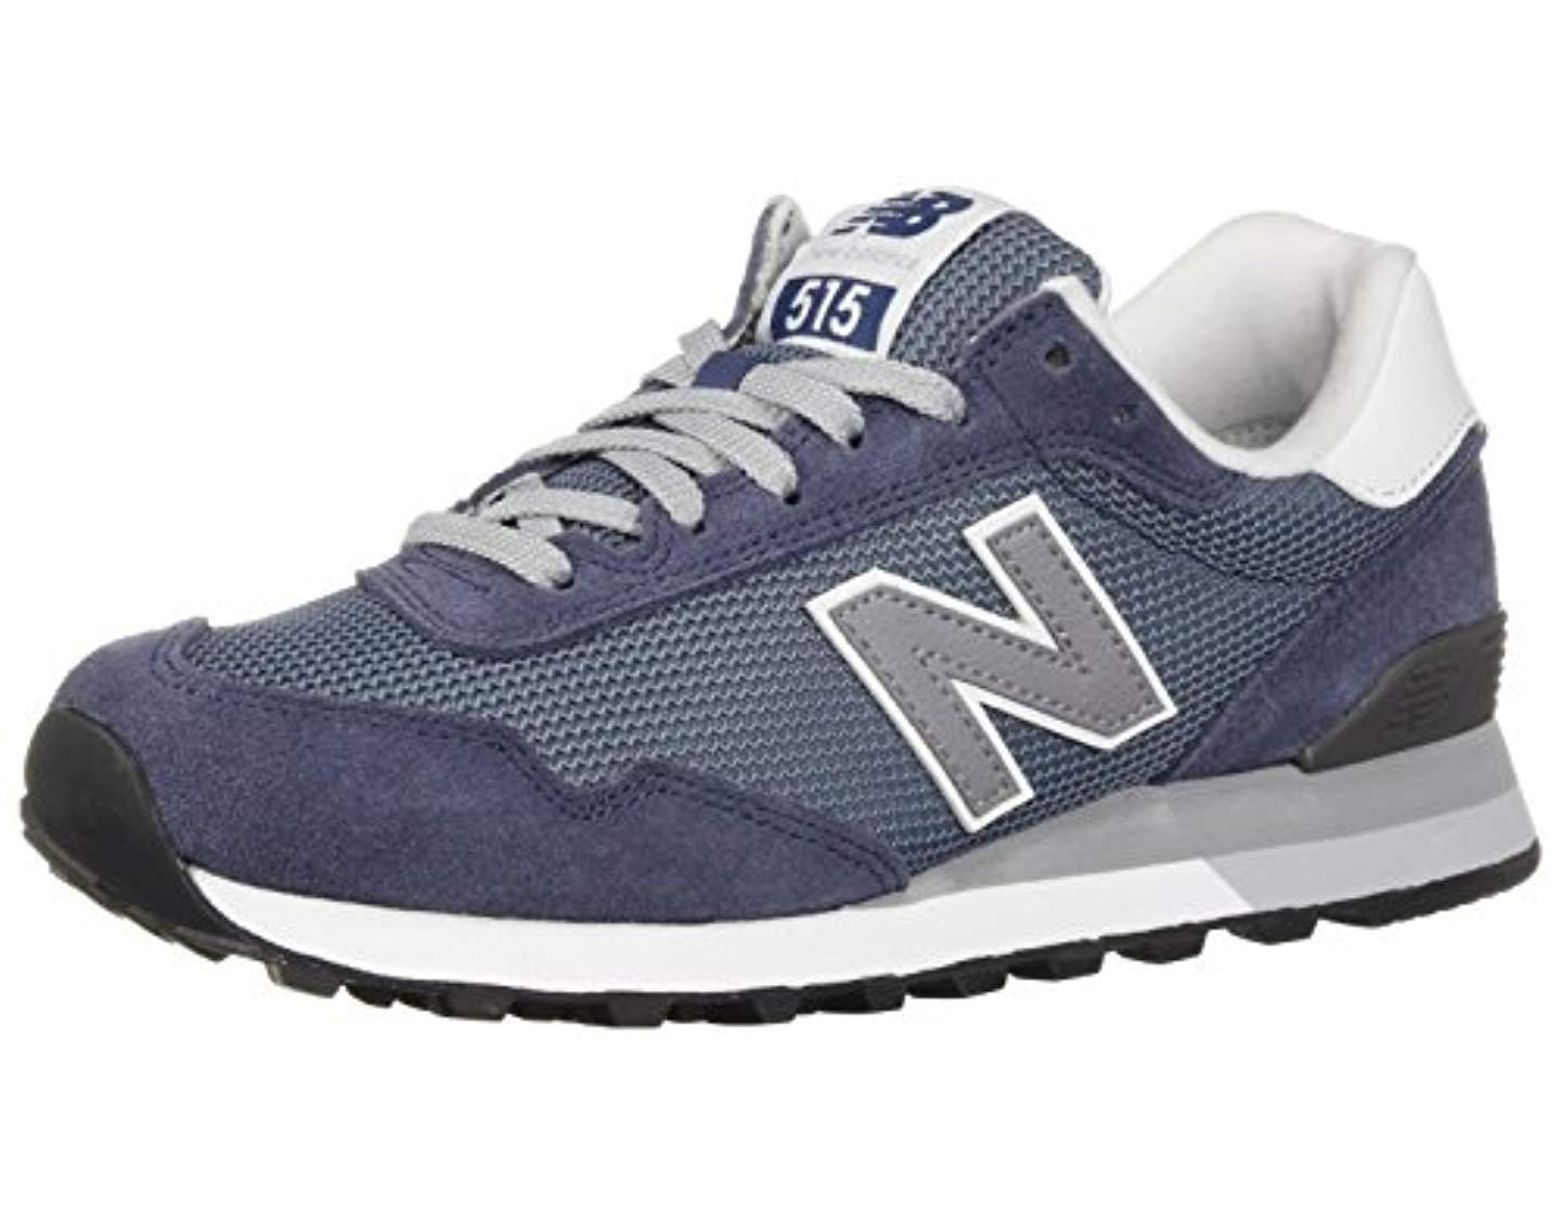 sports shoes 73dc1 76615 Lyst - New Balance 515v1 Sneaker in Blue for Men - Save 23%